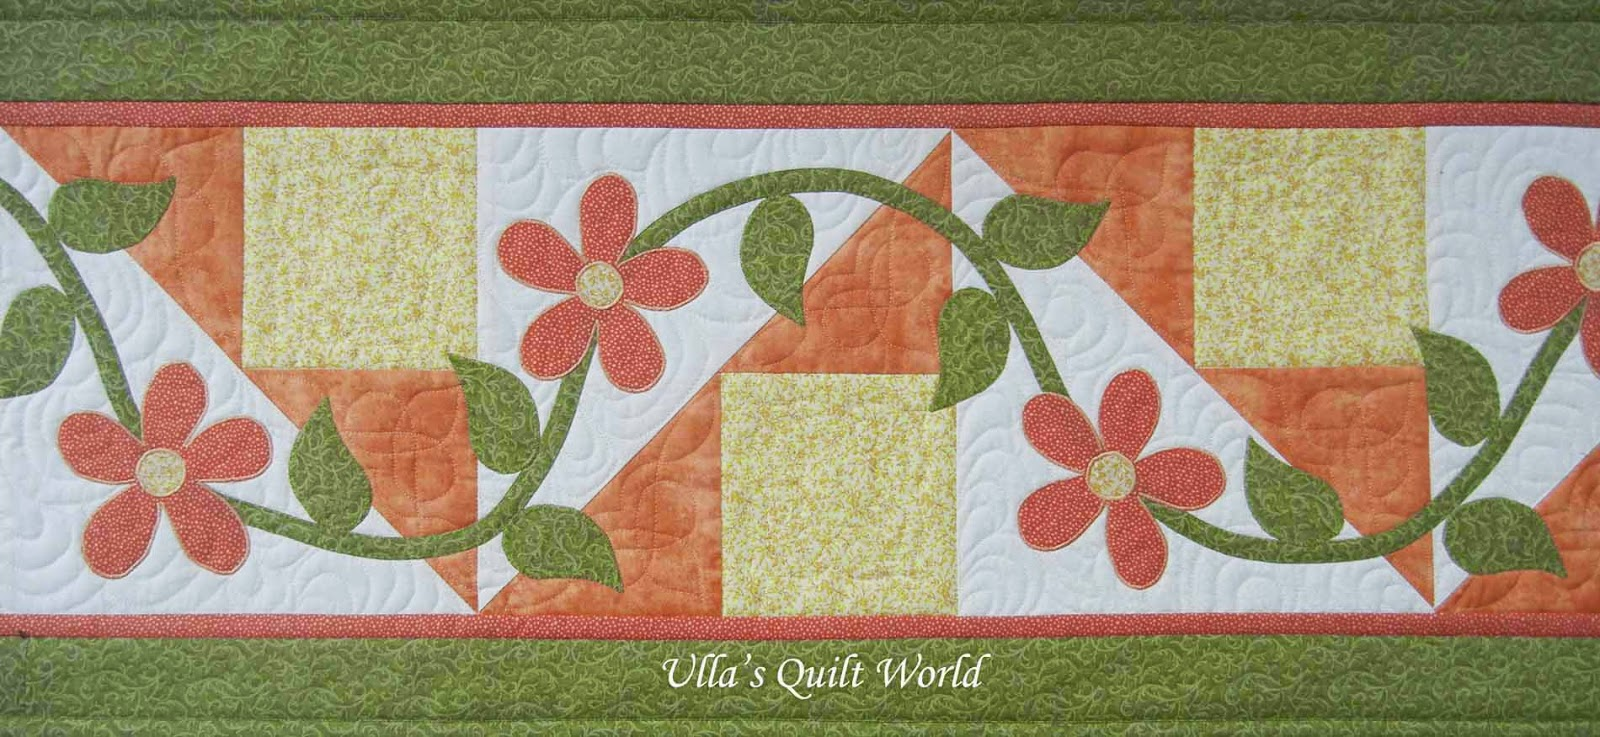 Ulla's Quilt World: Table runner quilt with flowers : quilting flowers - Adamdwight.com